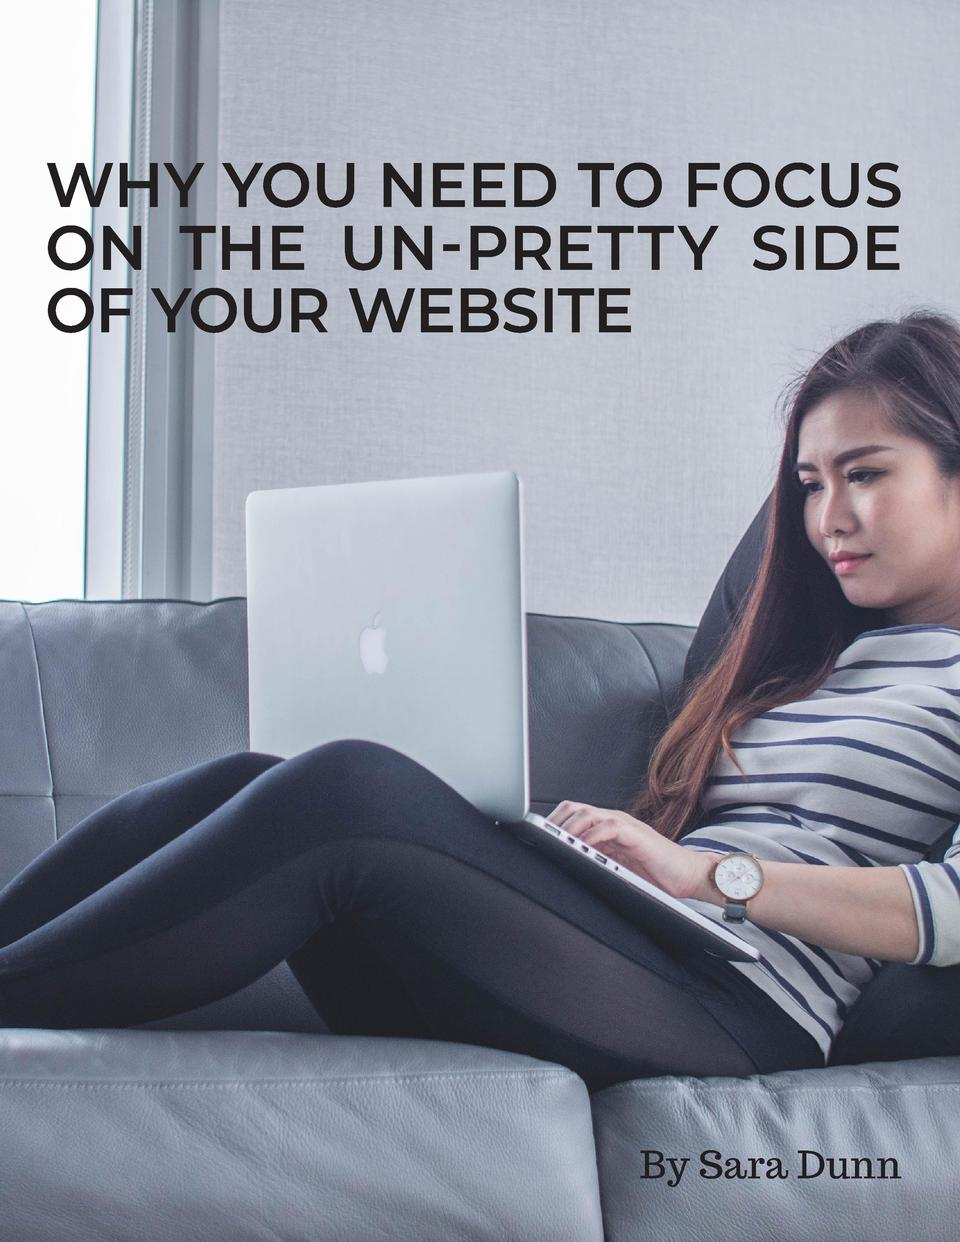 WHY YOU NEED TO FOCUS ON THE UN-PRETTY SIDE OF YOUR WEBSITE  By Sara Dunn